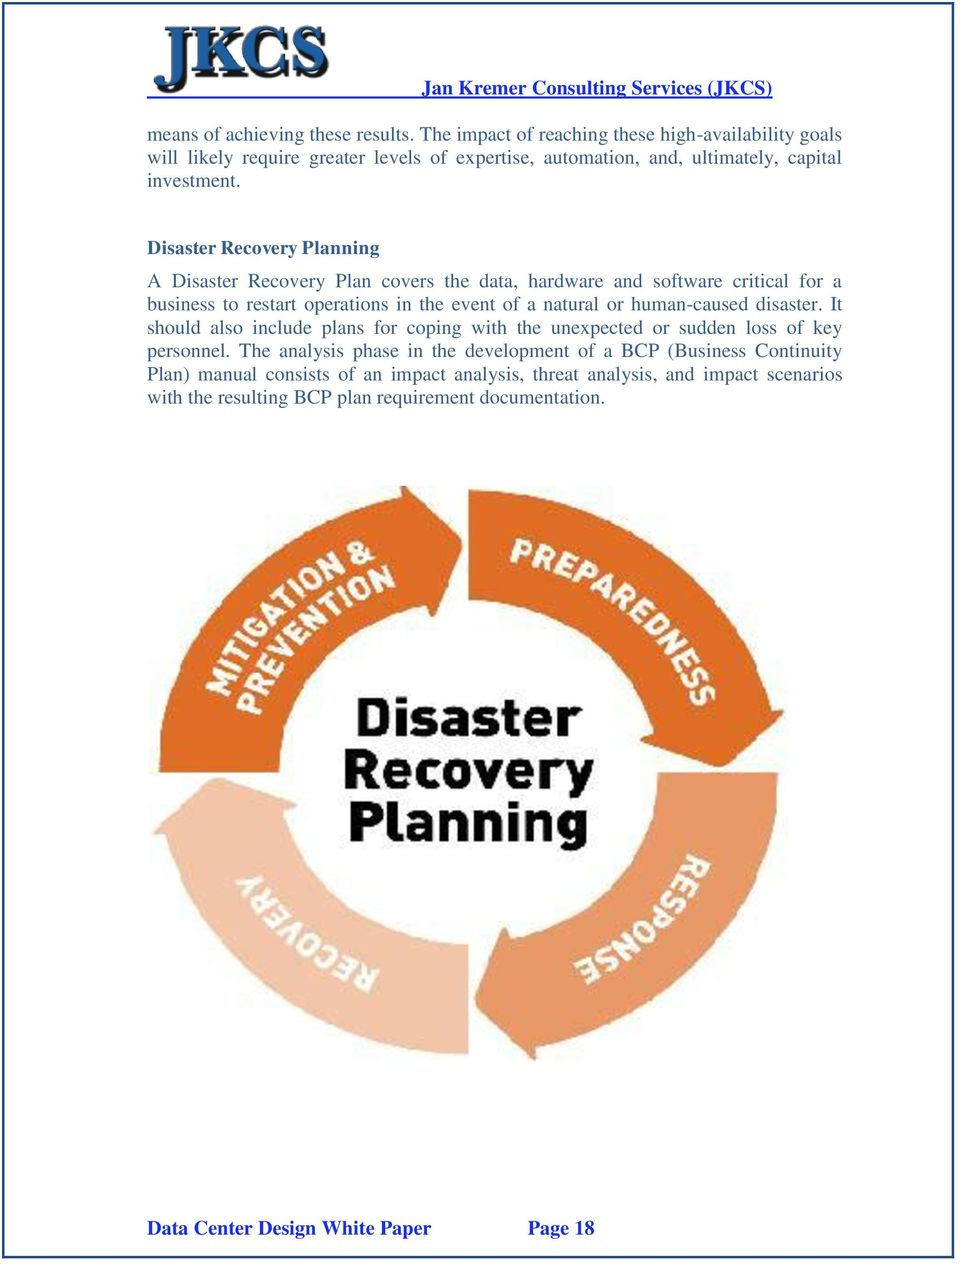 Disaster Recovery Planning A Disaster Recovery Plan covers the data, hardware and software critical for a business to restart operations in the event of a natural or